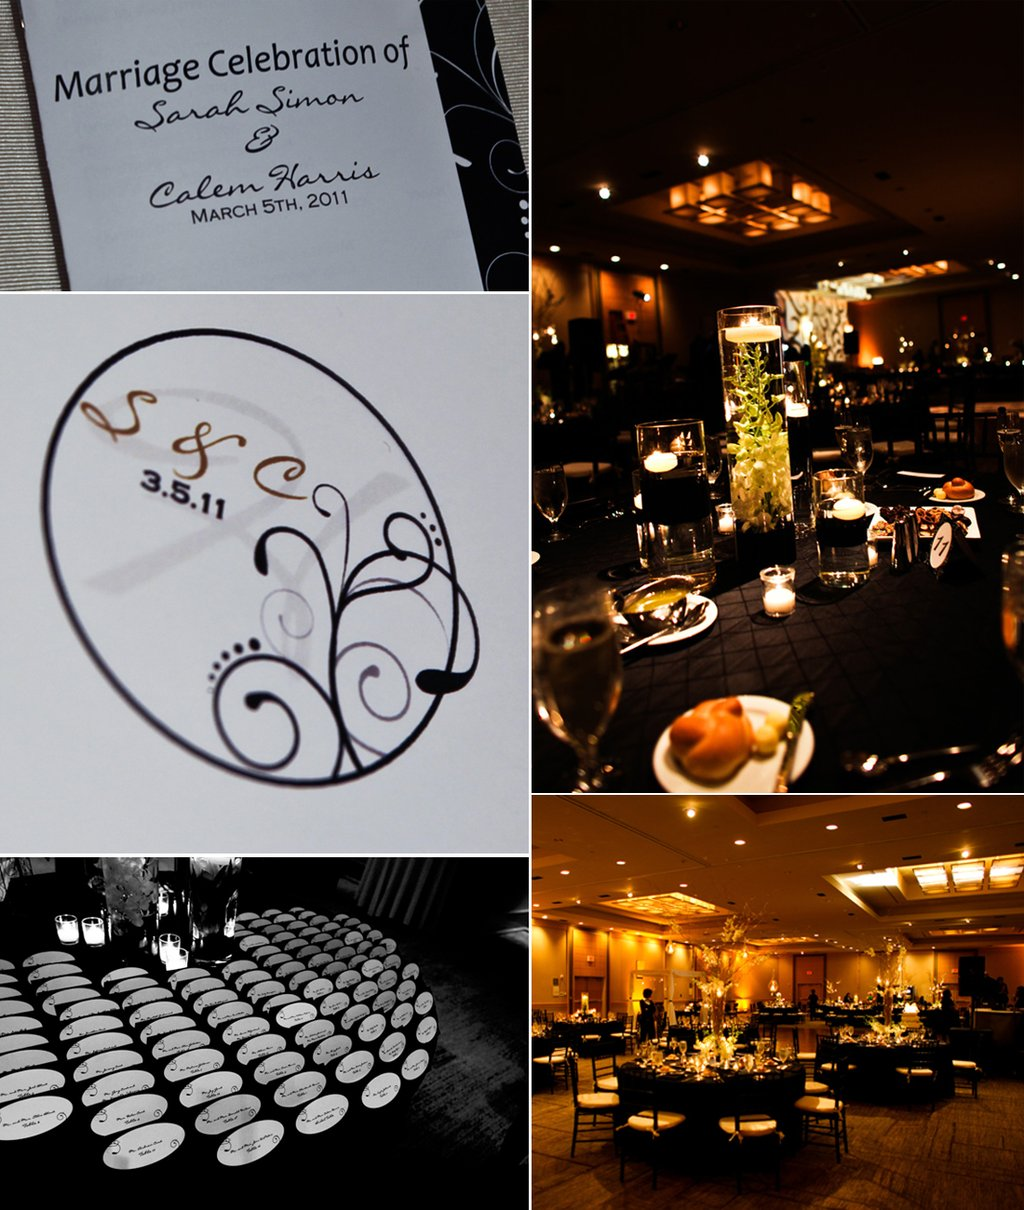 Winter-wedding-black-white-wedding-decor-reception-hall-monogramed-wedding-stationery.full